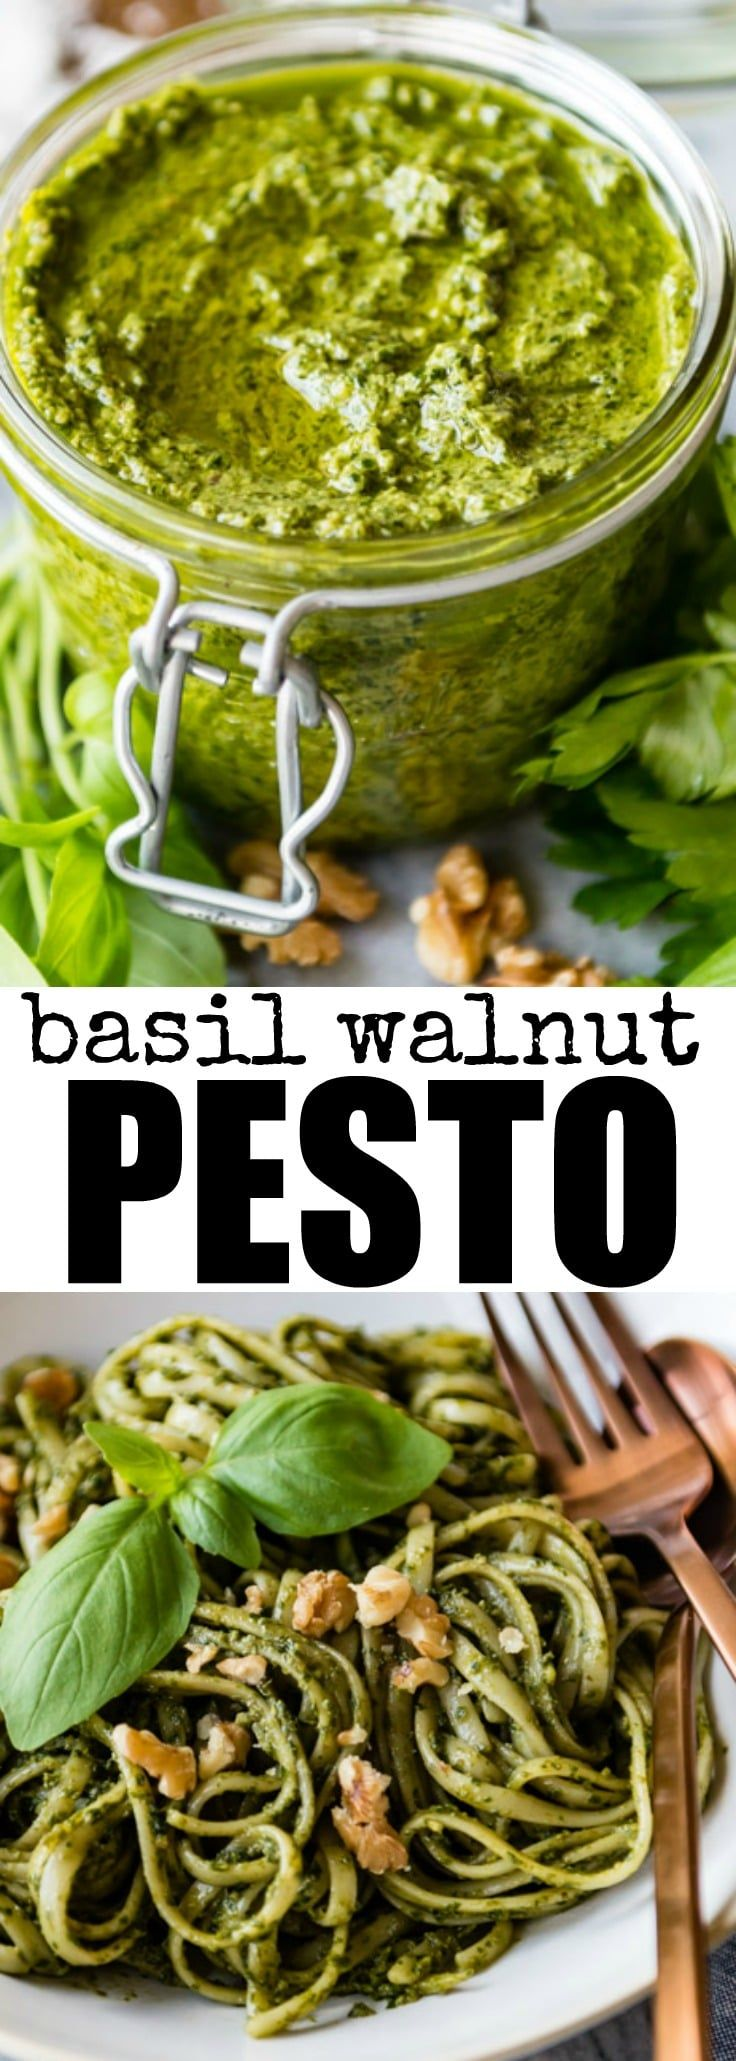 This Basil Walnut Pesto recipe comes together in 15 minutes with just 6 ingredients. Great for pasta, sandwich spreads, and garnishing soups!